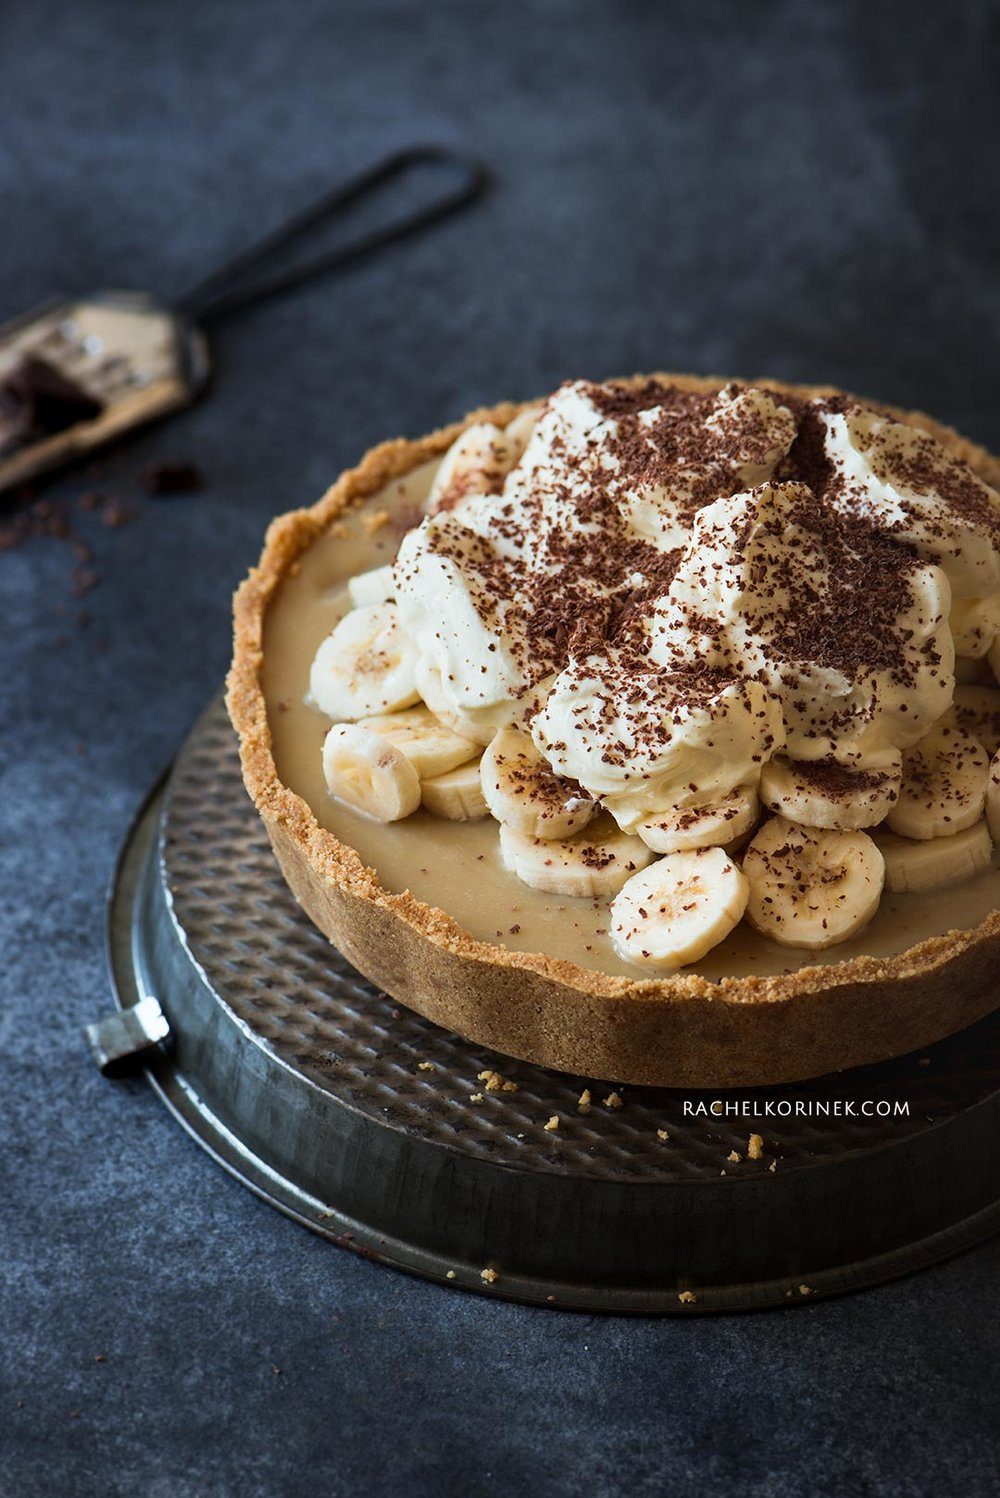 Rachel Korinek Food Photographer   Banoffee Pie  Click to check out my latest food photography projects.  #twolovesstudio #beautifulcuisine #foodbloggerpro #foodphotography #learnfoodphotography #foodblogger #learnphotography #foodstyling #lightingtips #naturallight #foodphotographer